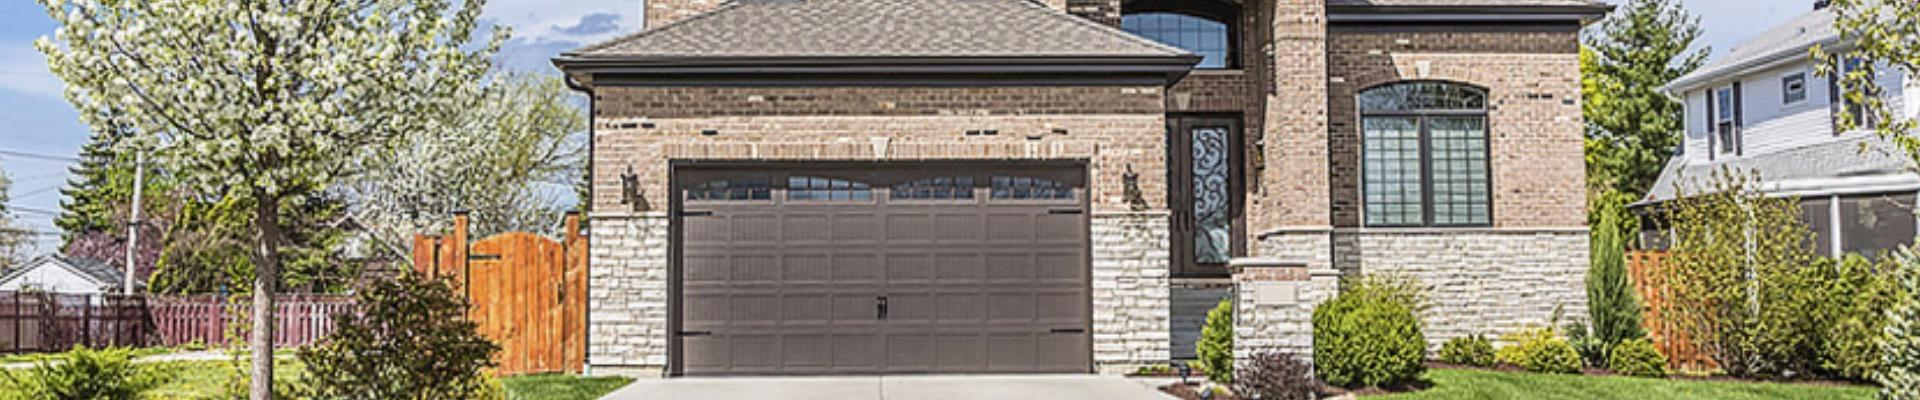 J.P. Edmunds Garage Doors